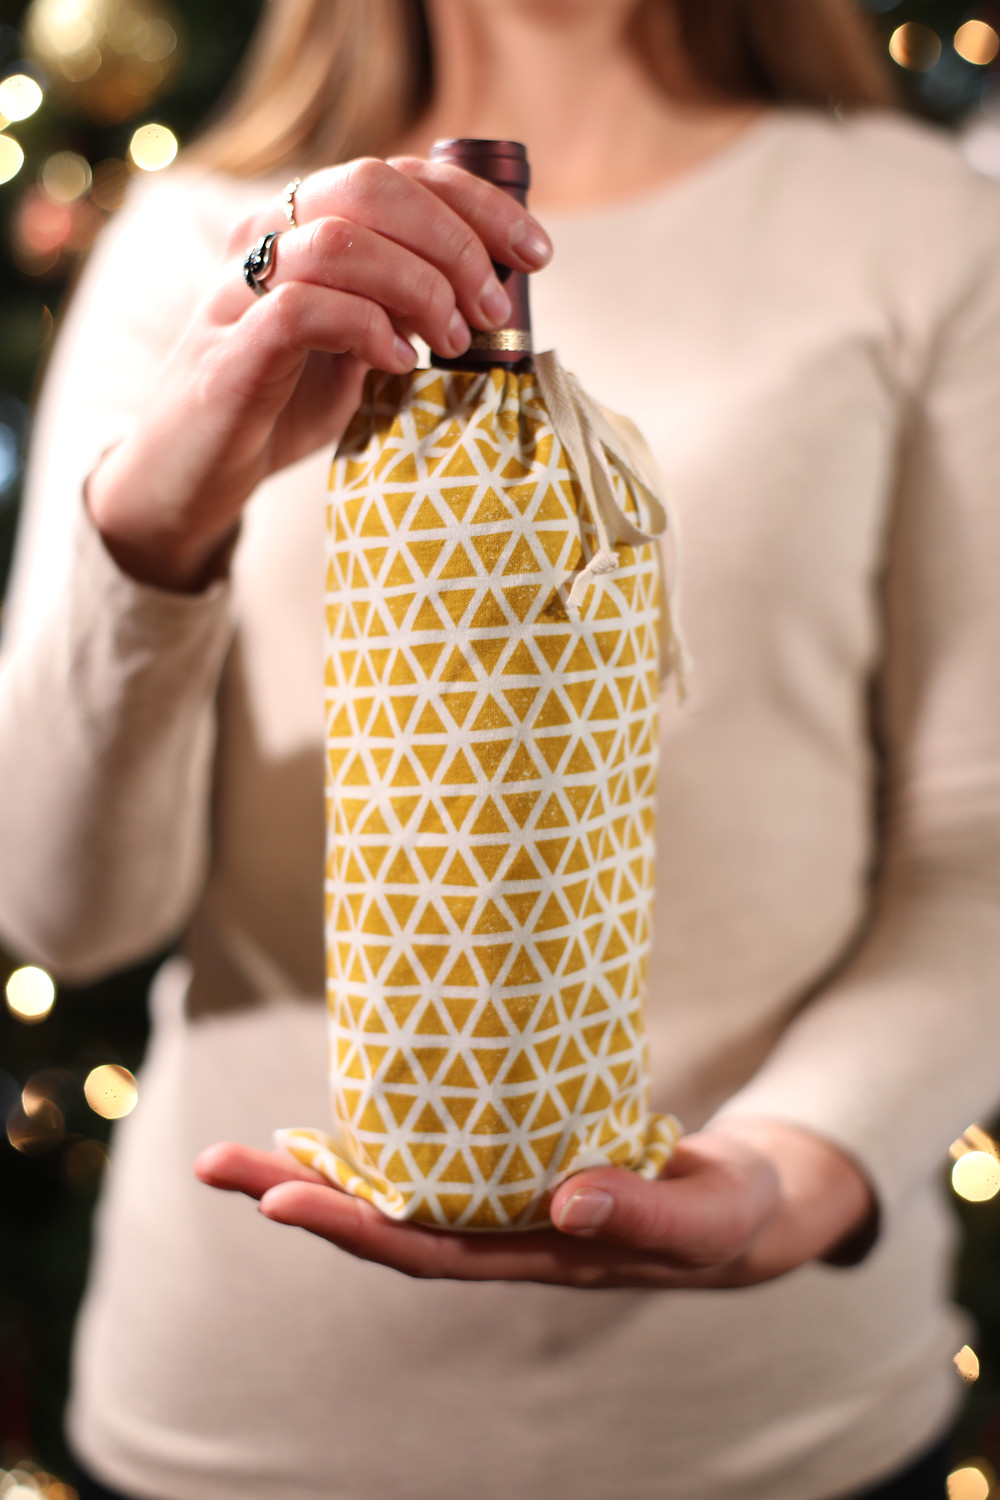 A large drawstring bag from Lakeshore Dry Goods who make organic cotton goods in Petoskey Michigan. Steph from the Each Day Slow blog shares more about them.